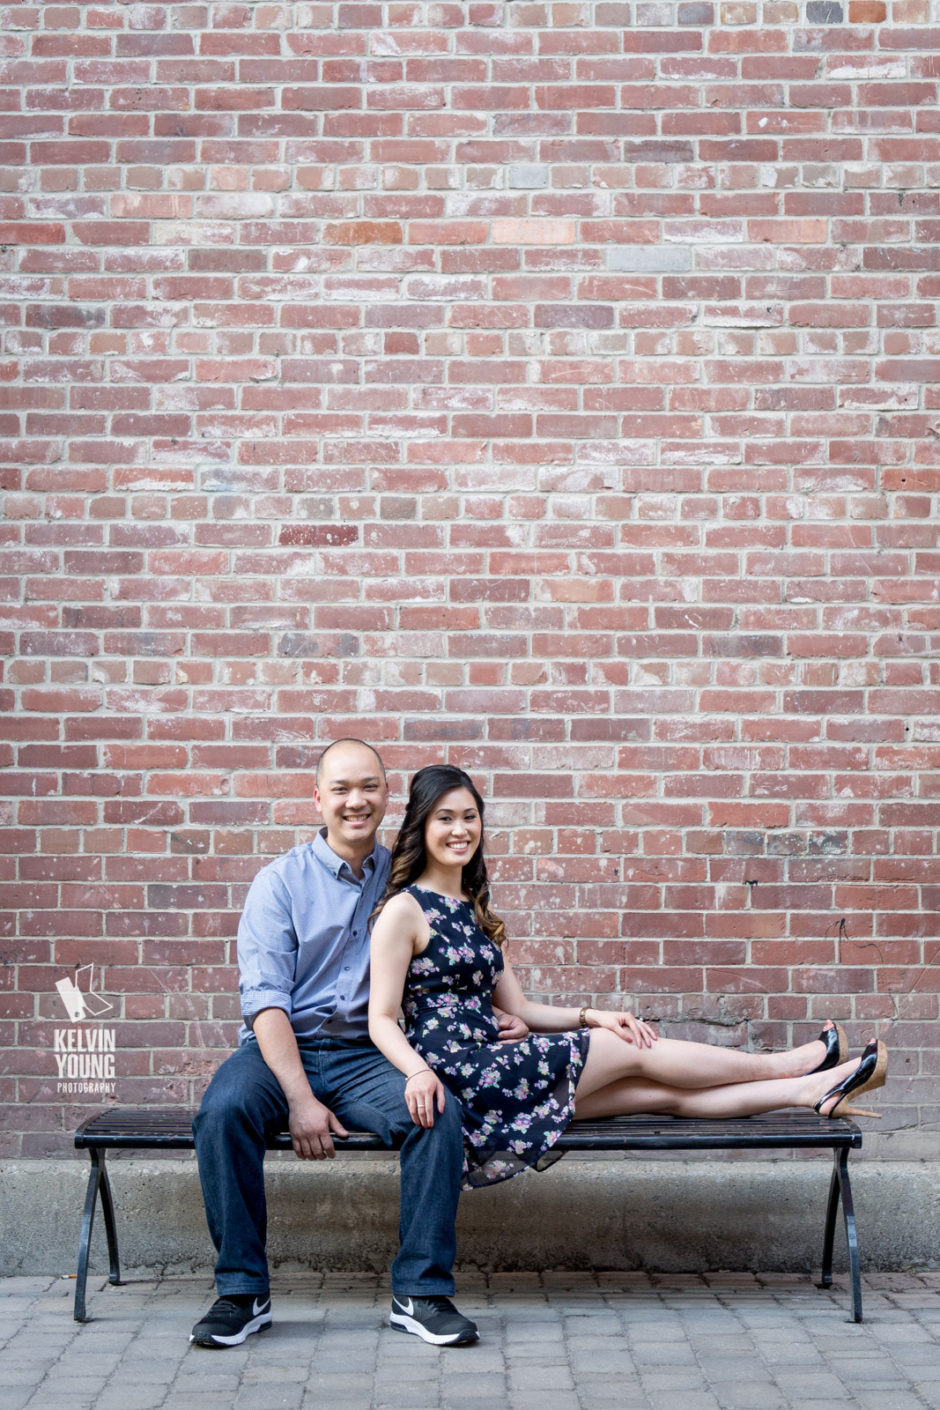 KYP16-Wendy-Steven-Liberty_Village_Engagement-006